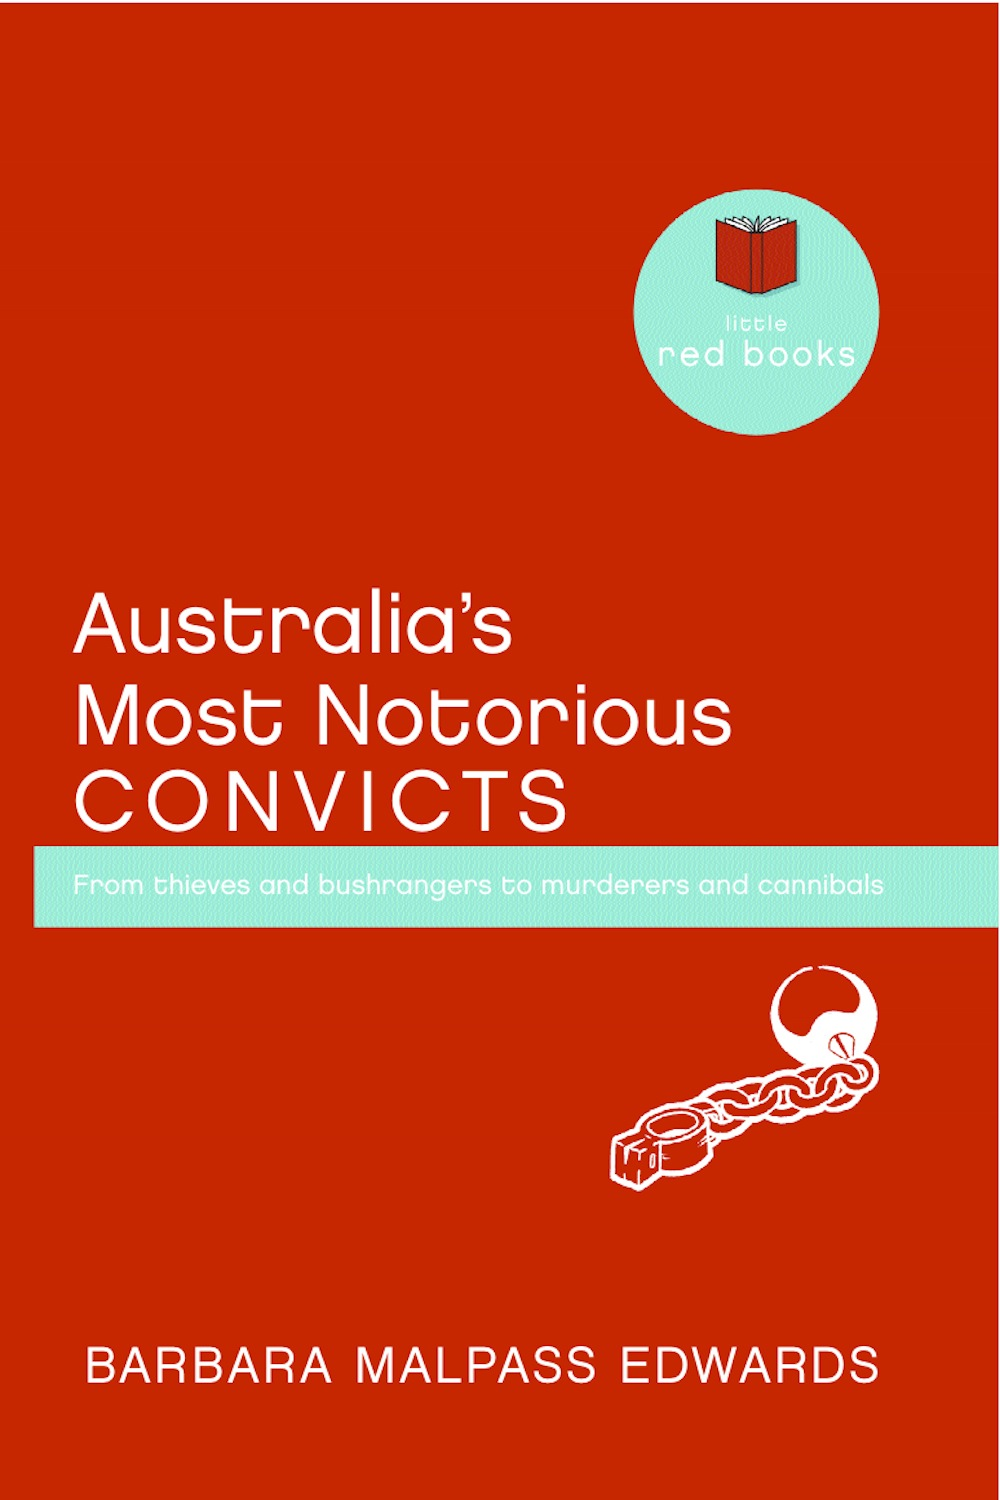 Australia's Most Notorious Convicts: From thieves and bushrangers to murderers and cannibals